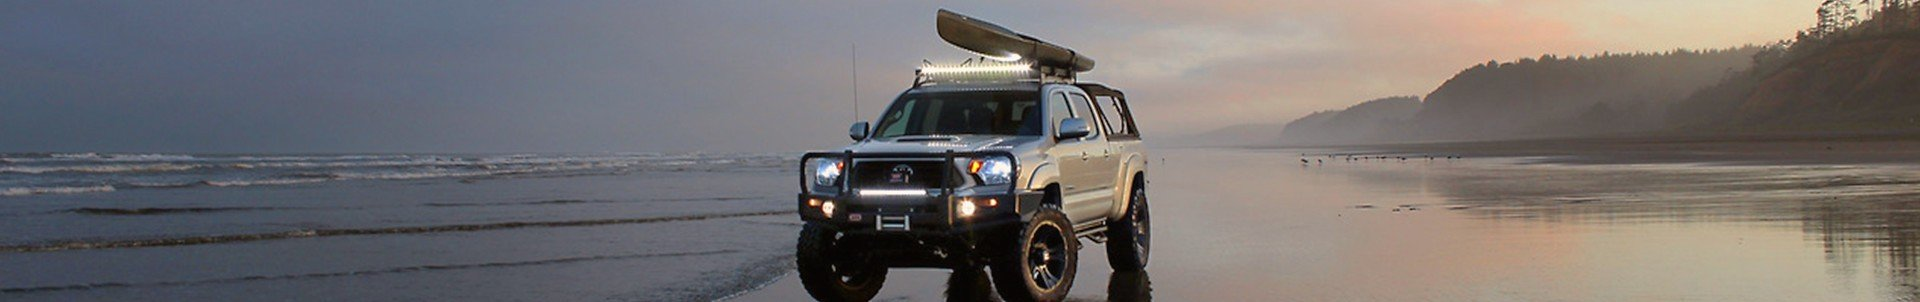 Off-Road Tough LED Lights  4x4 Mounting Solutions Front Runner